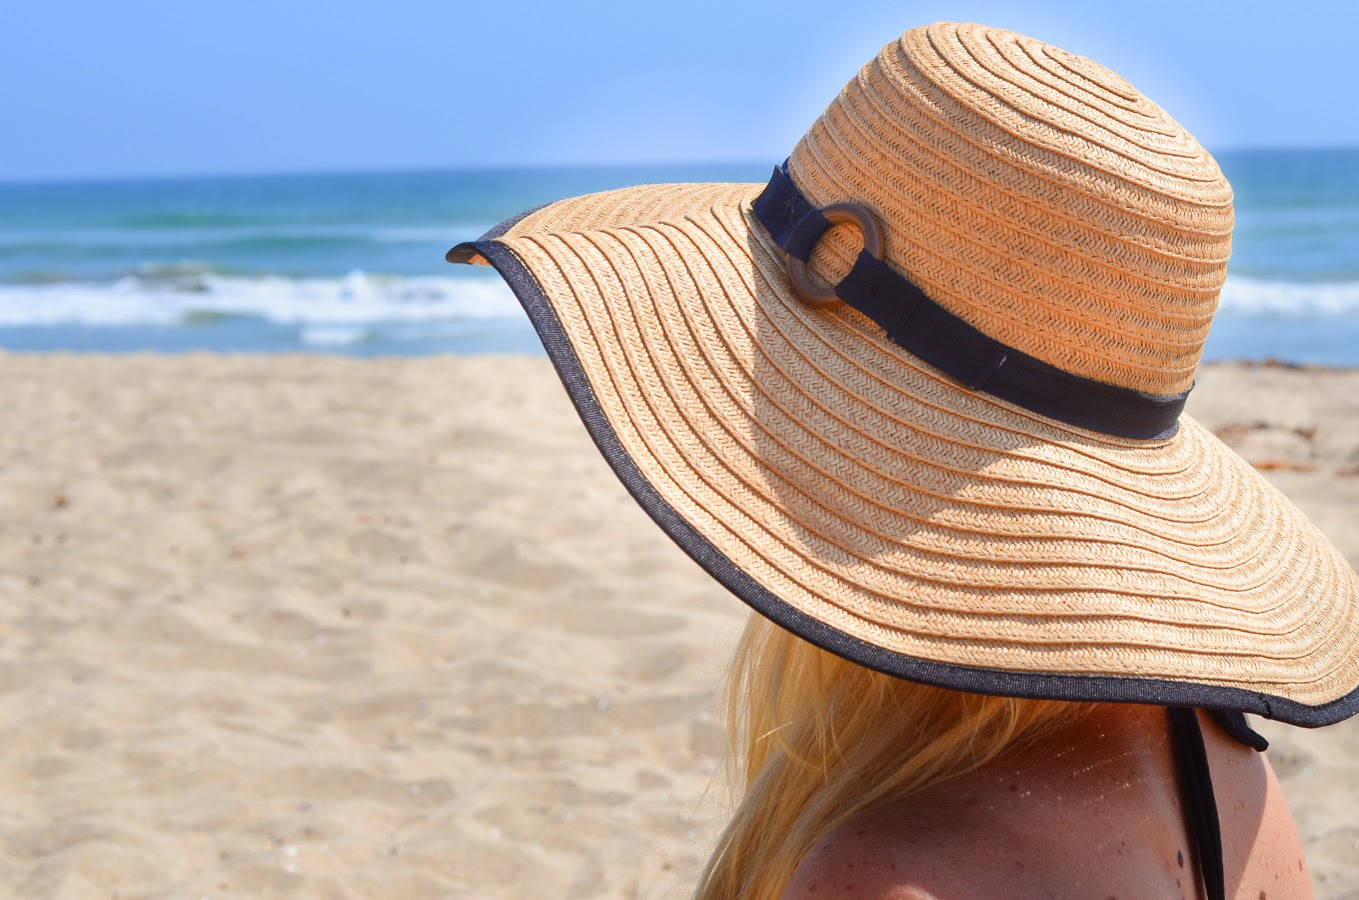 Huntington Doggie Beach Day - Floppy Beach Hat | Luci's Morsels